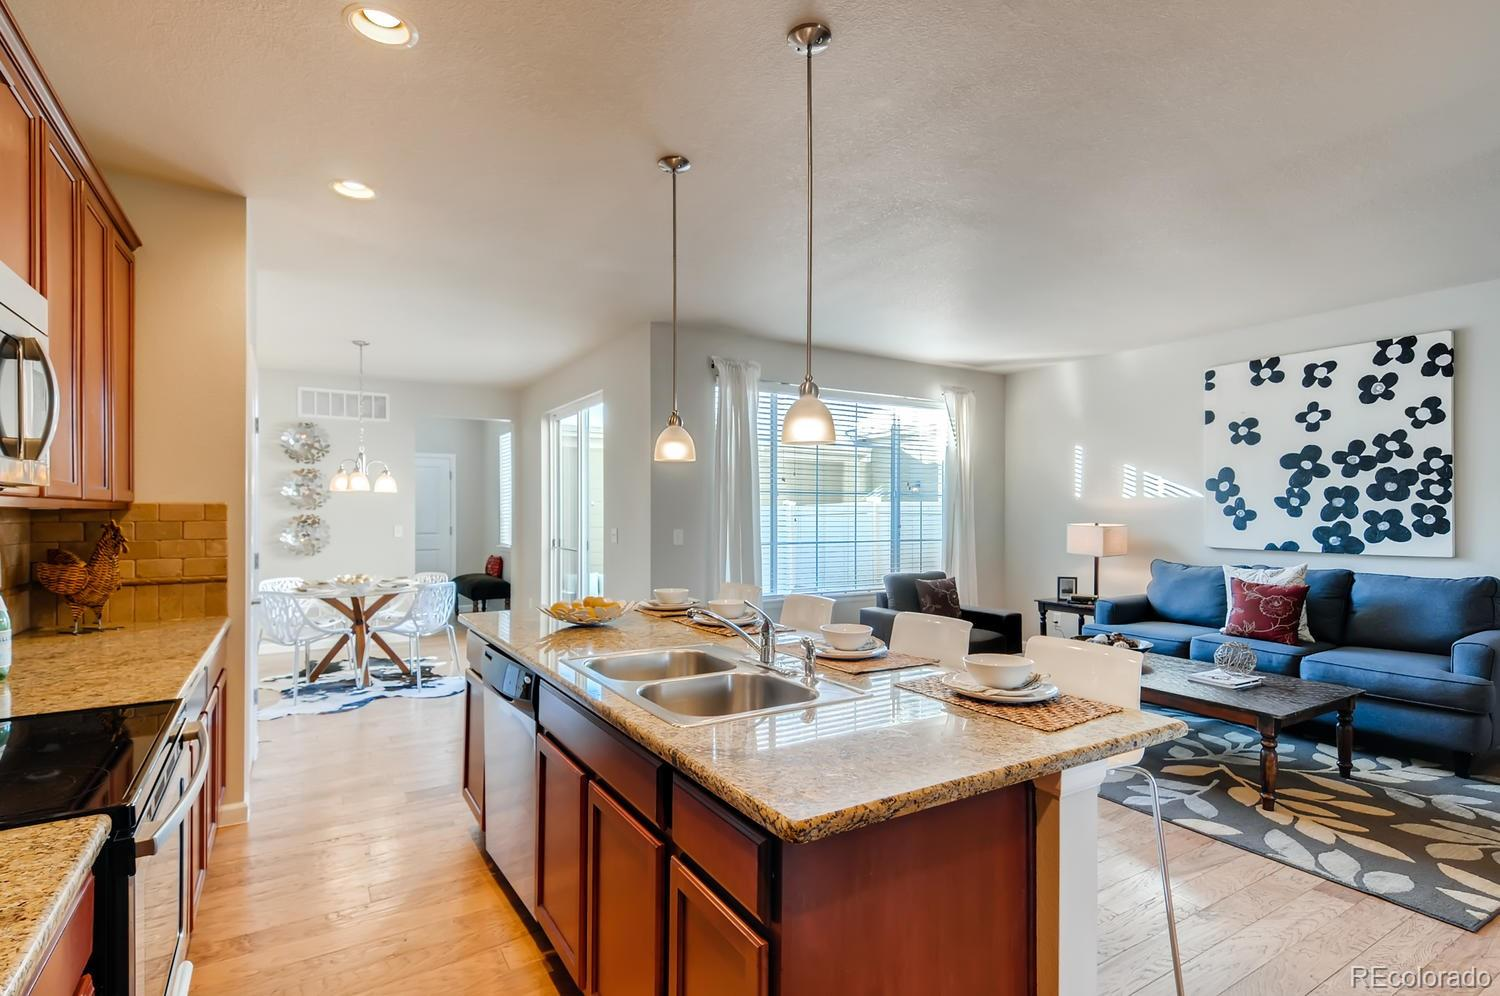 MLS# 7221066 - 6 - 6288 Orchard Court #B, Arvada, CO 80403